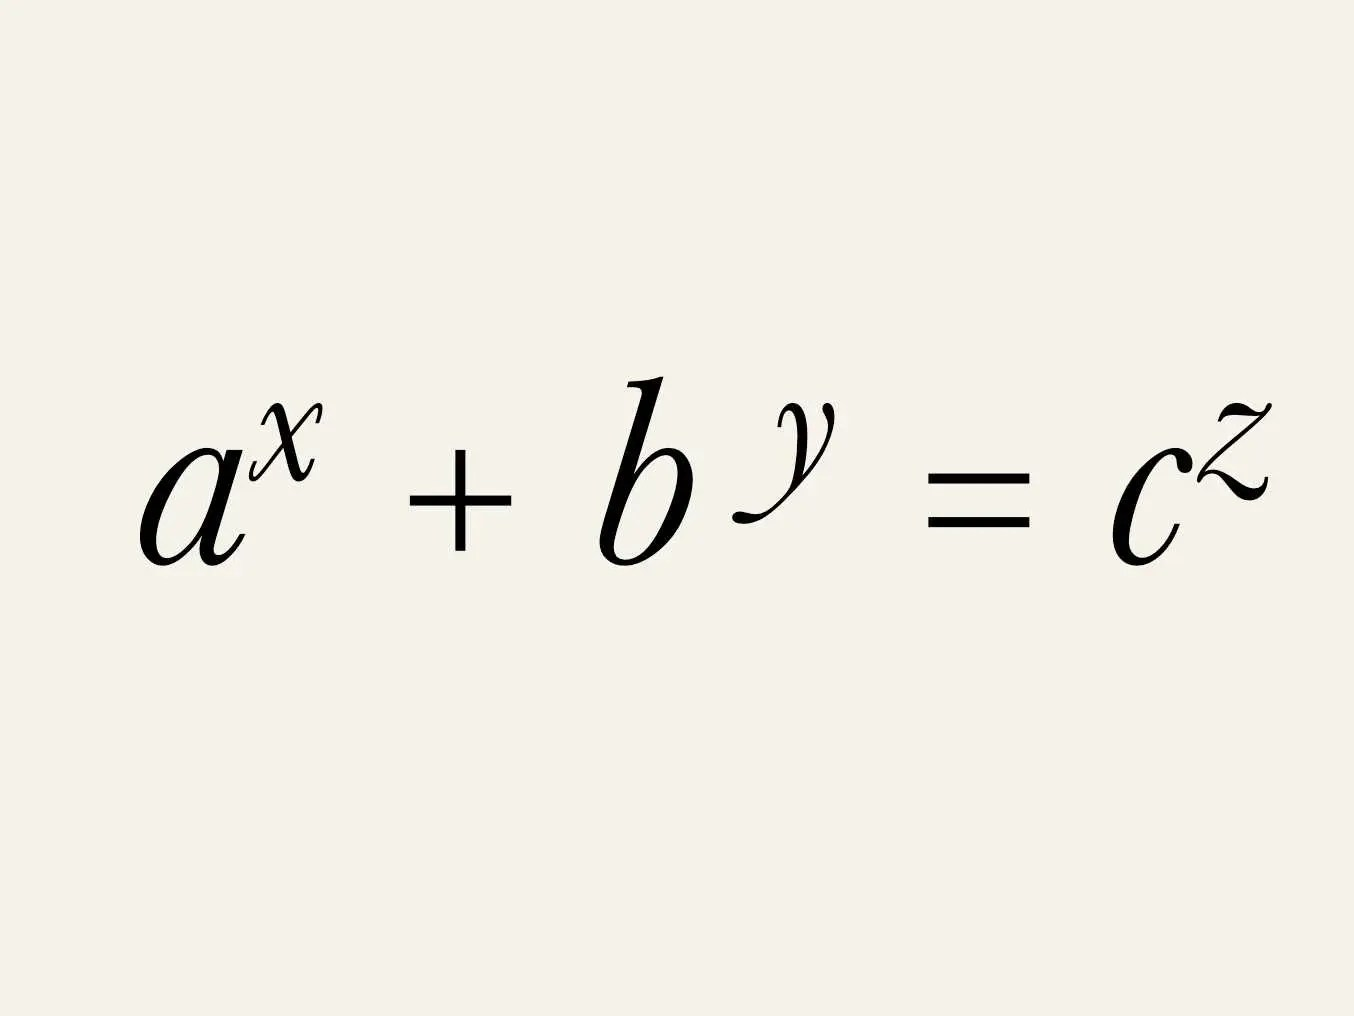 6 Maths Problems That You Can Solve To Earn Thousands Of